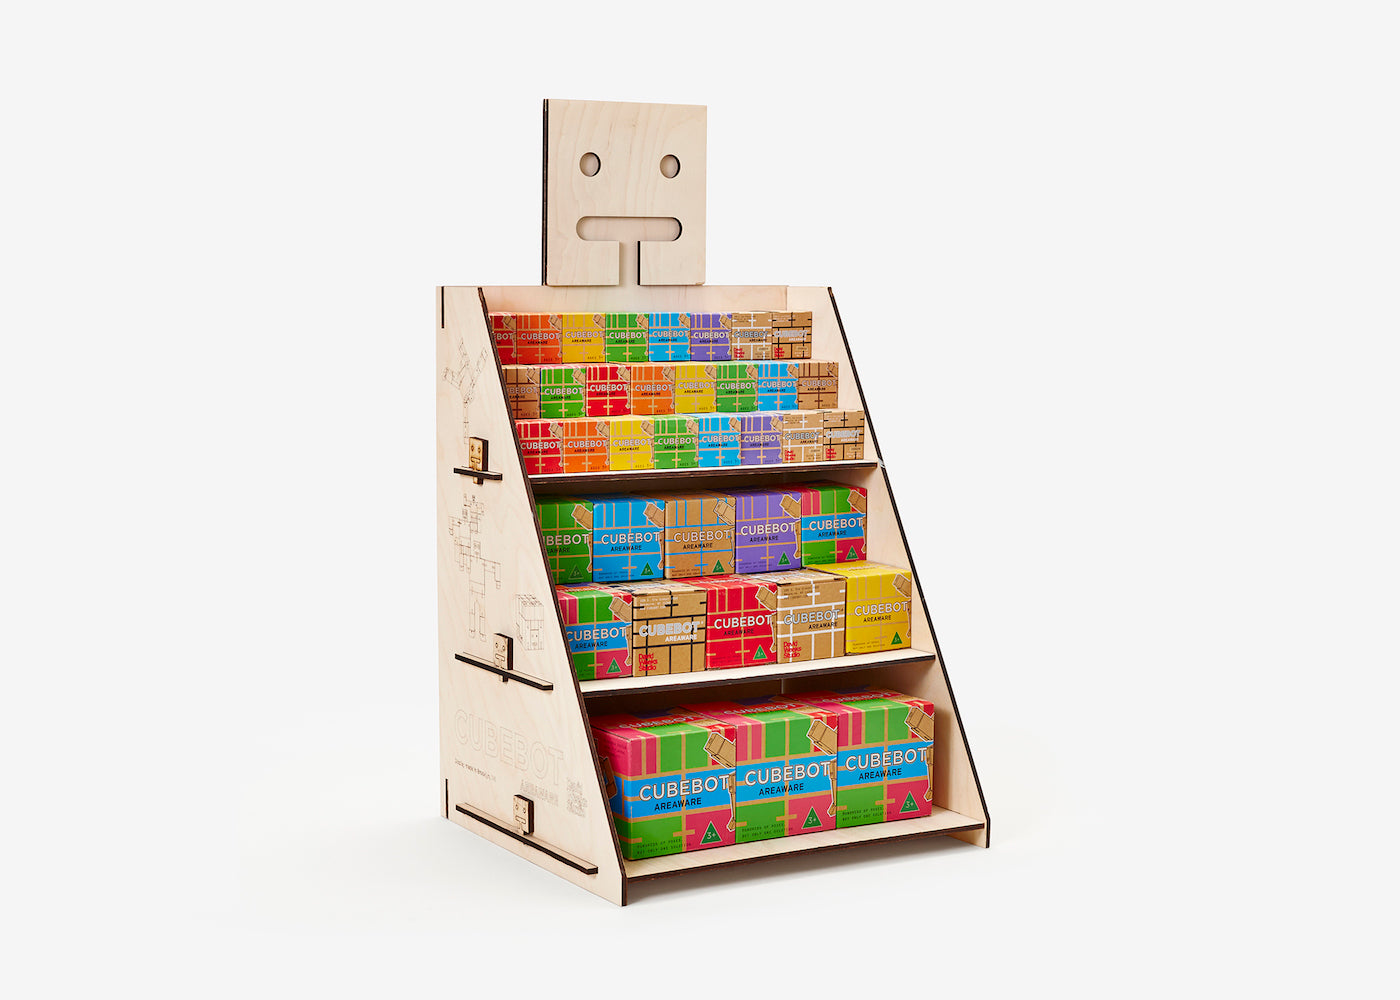 Cubebot - Wooden Display